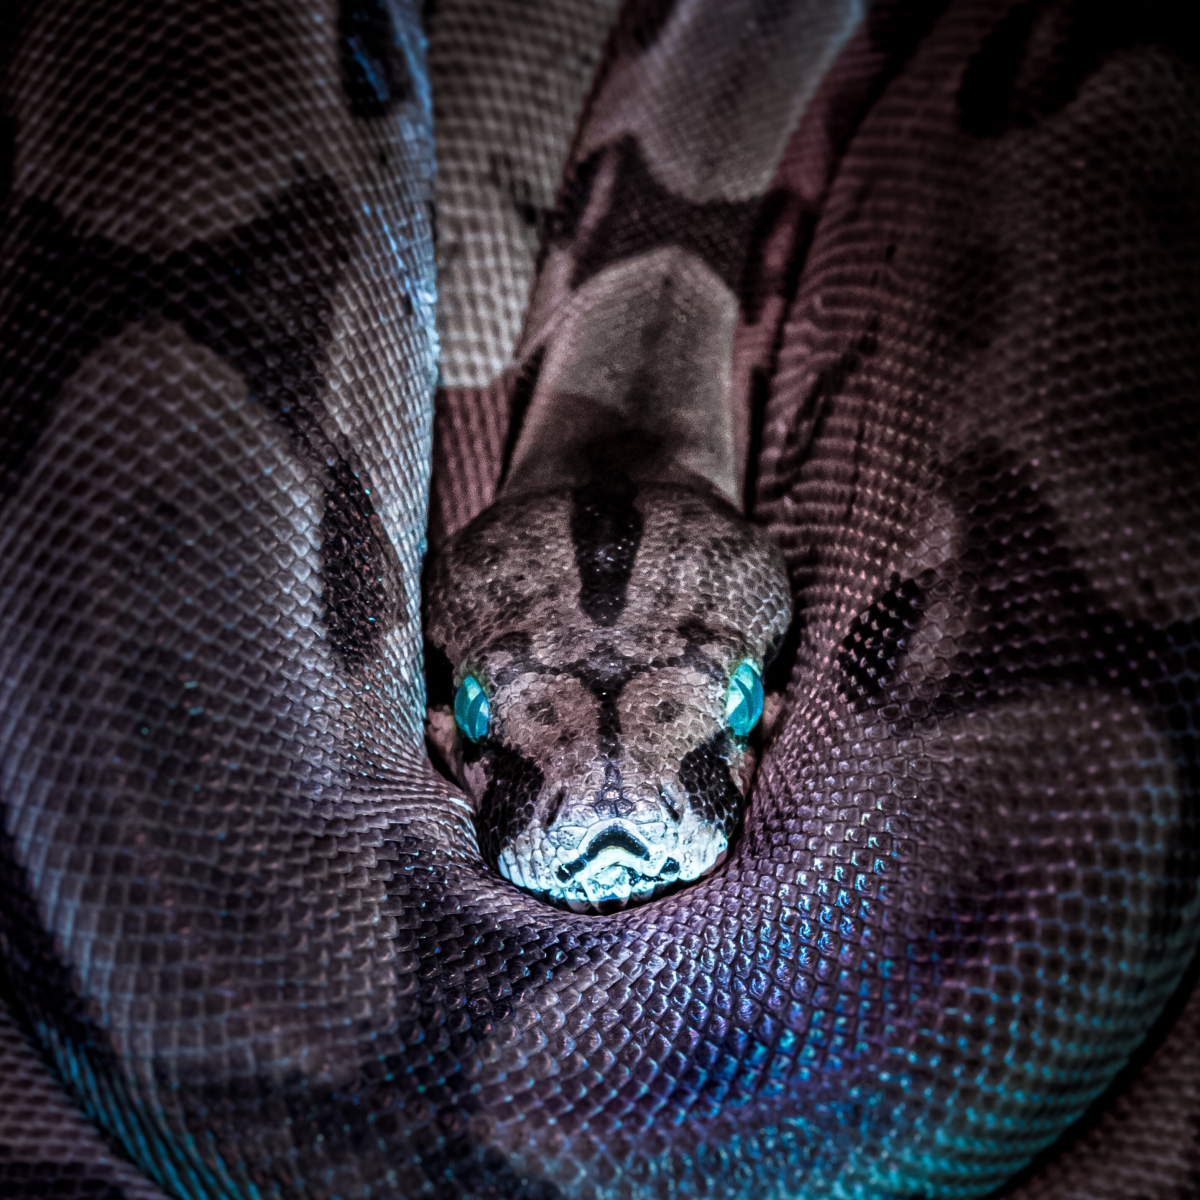 An extreme fear of snakes may be clinically diagnosed as ophidiophobia.